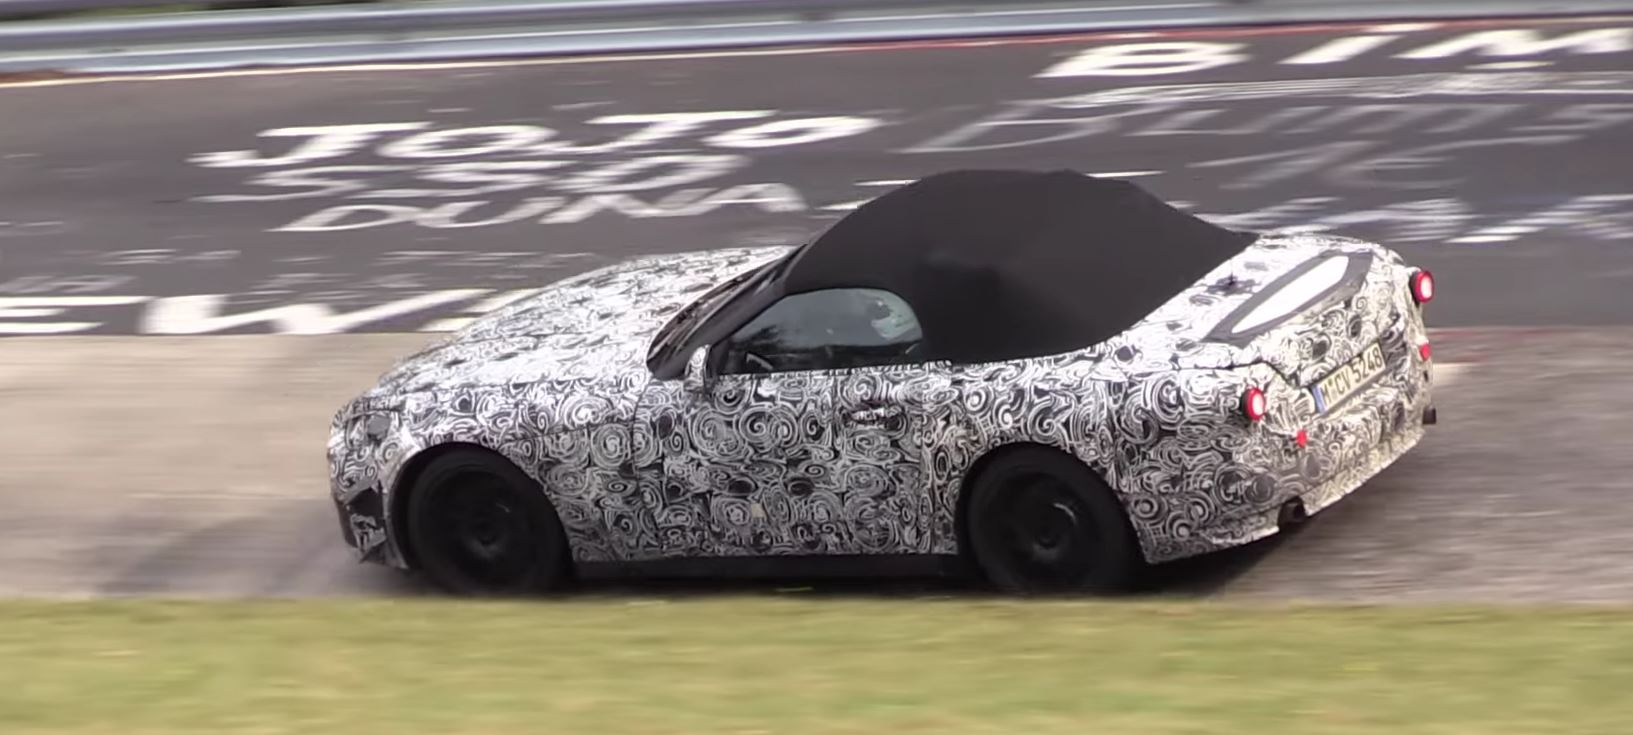 Video: Next-Generation Z Roadster Hits The 'Ring. | BMW Car Club of ...